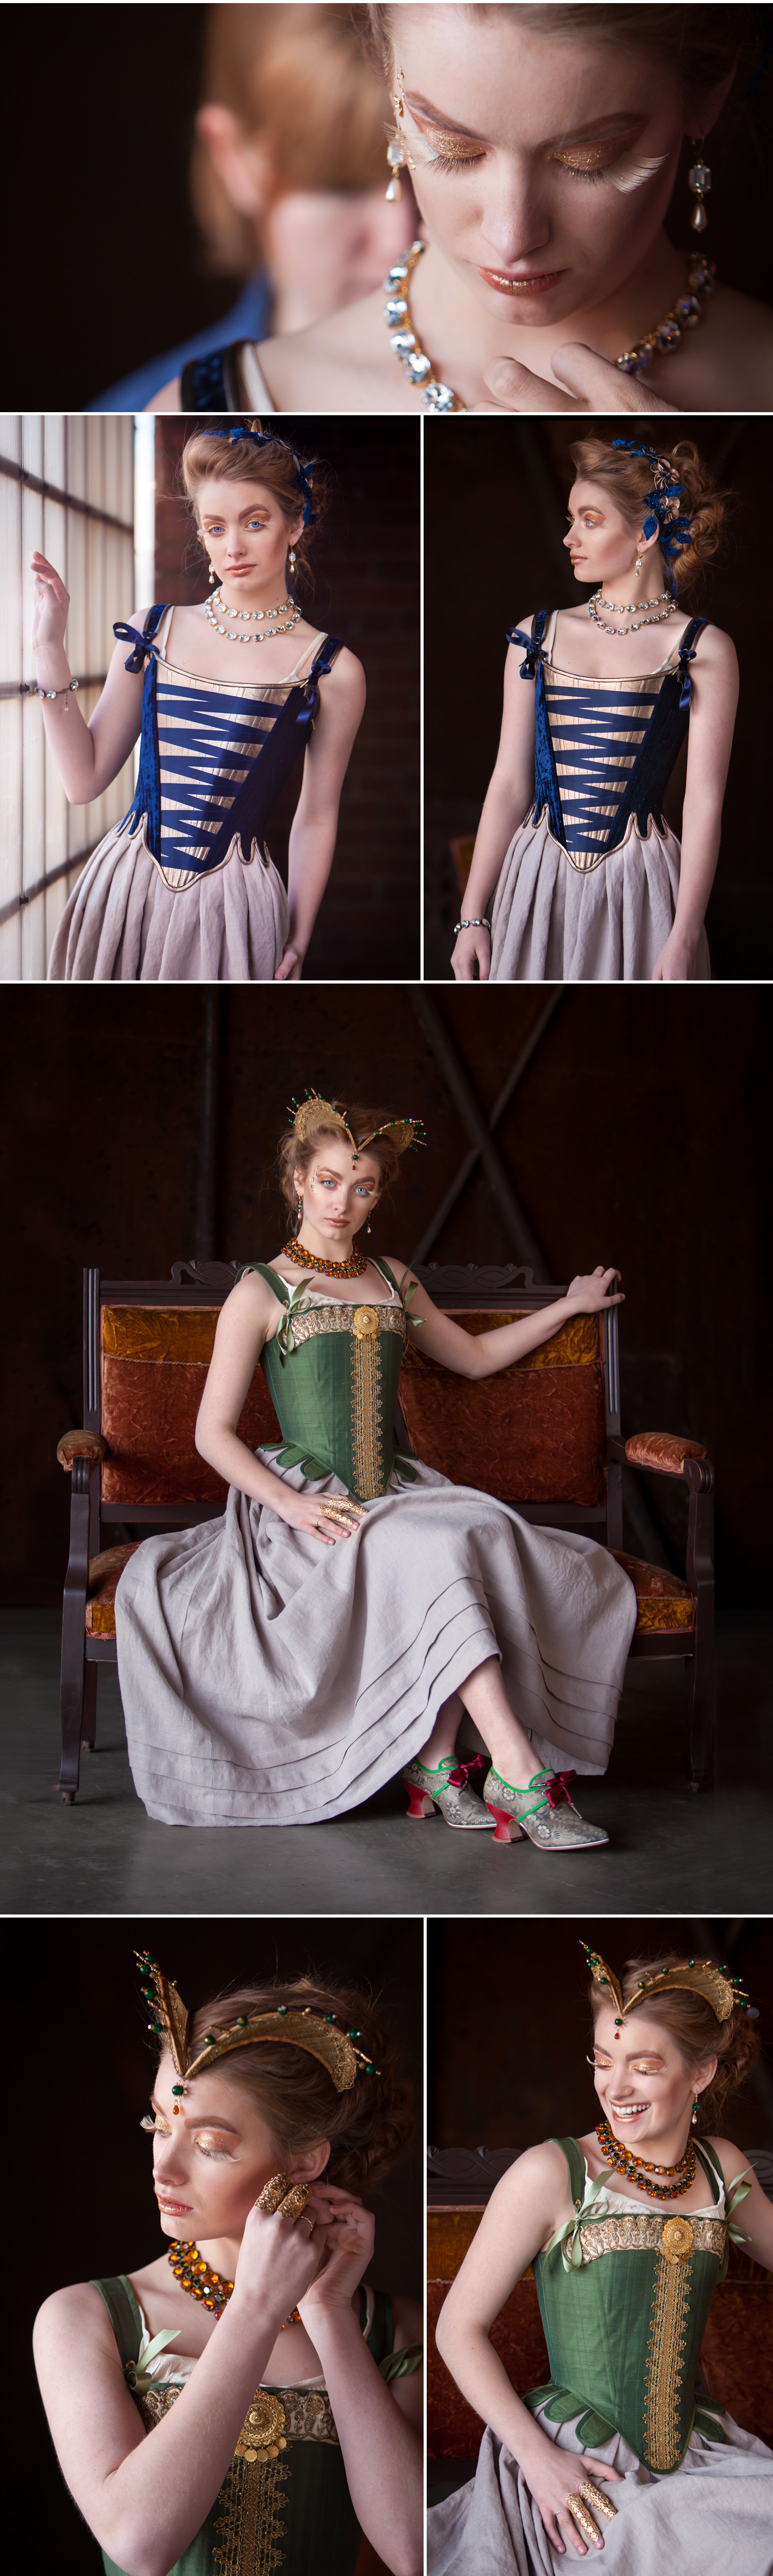 Fashion editorial photo shoot for Redthreaded (corset designer) with Denver photographer Jennifer Koskinen | Merritt Portrait Studio